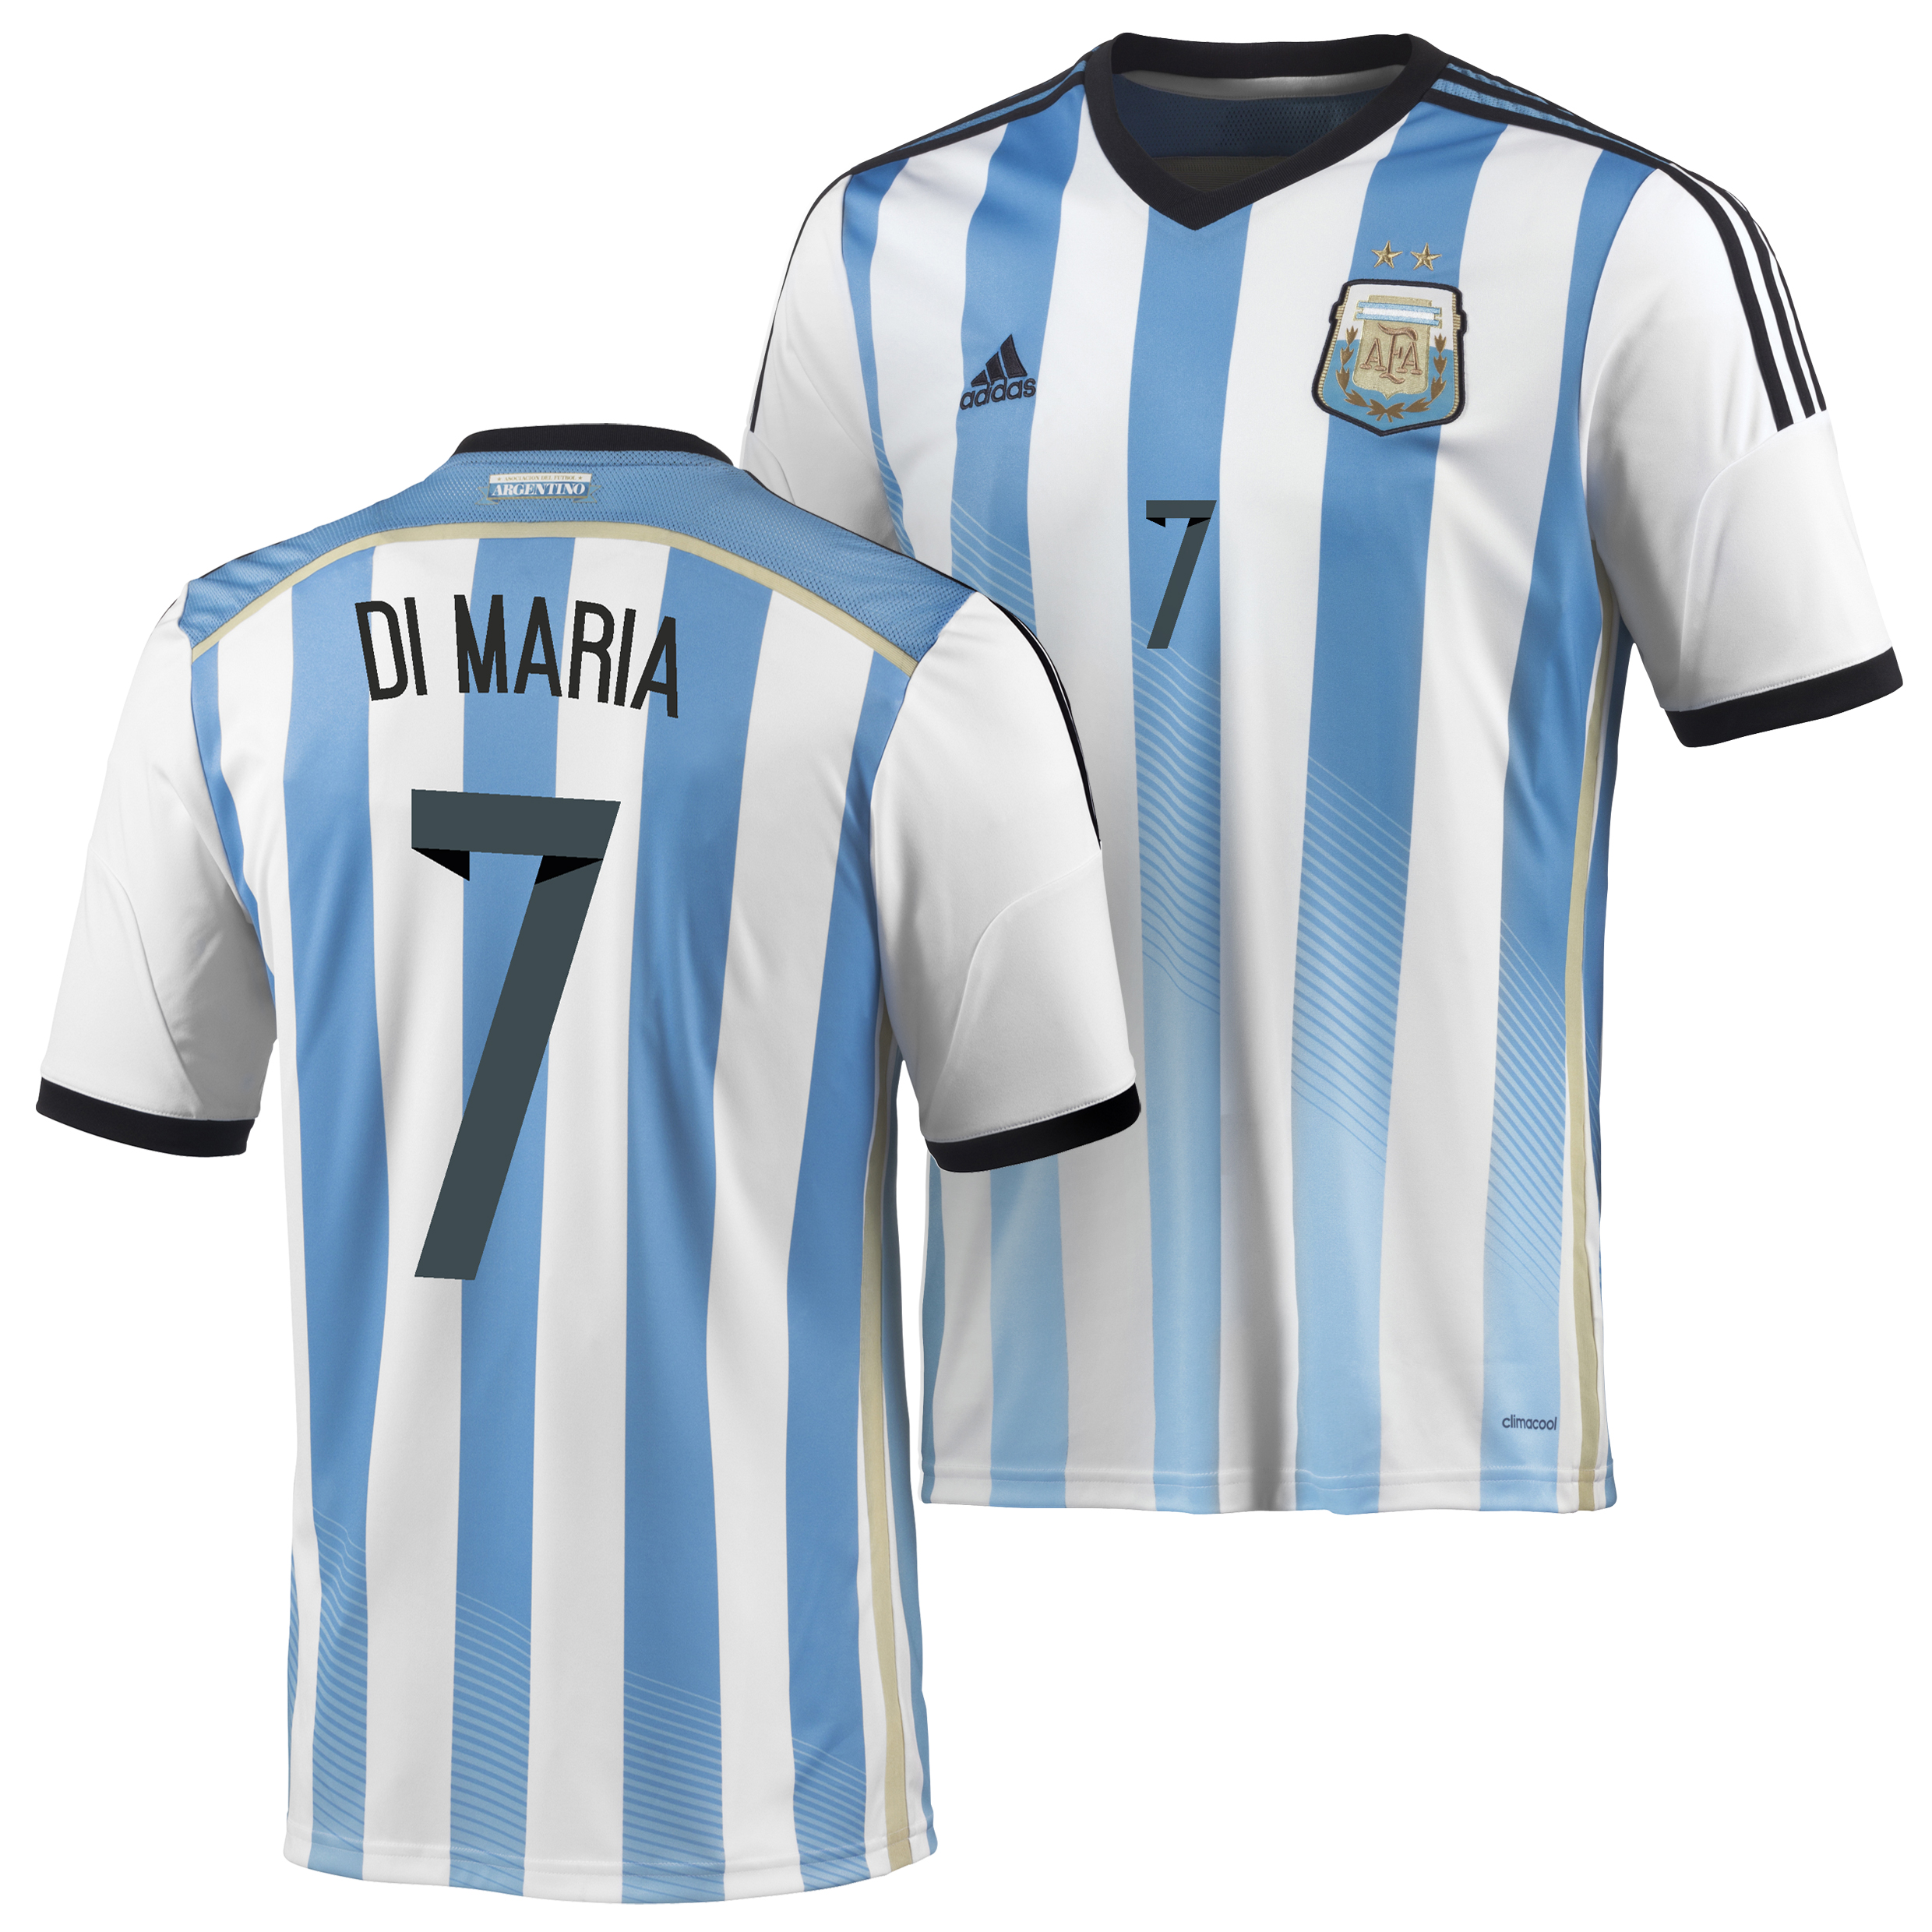 Argentina Home Shirt 2013/15 with Di Maria 7 printing